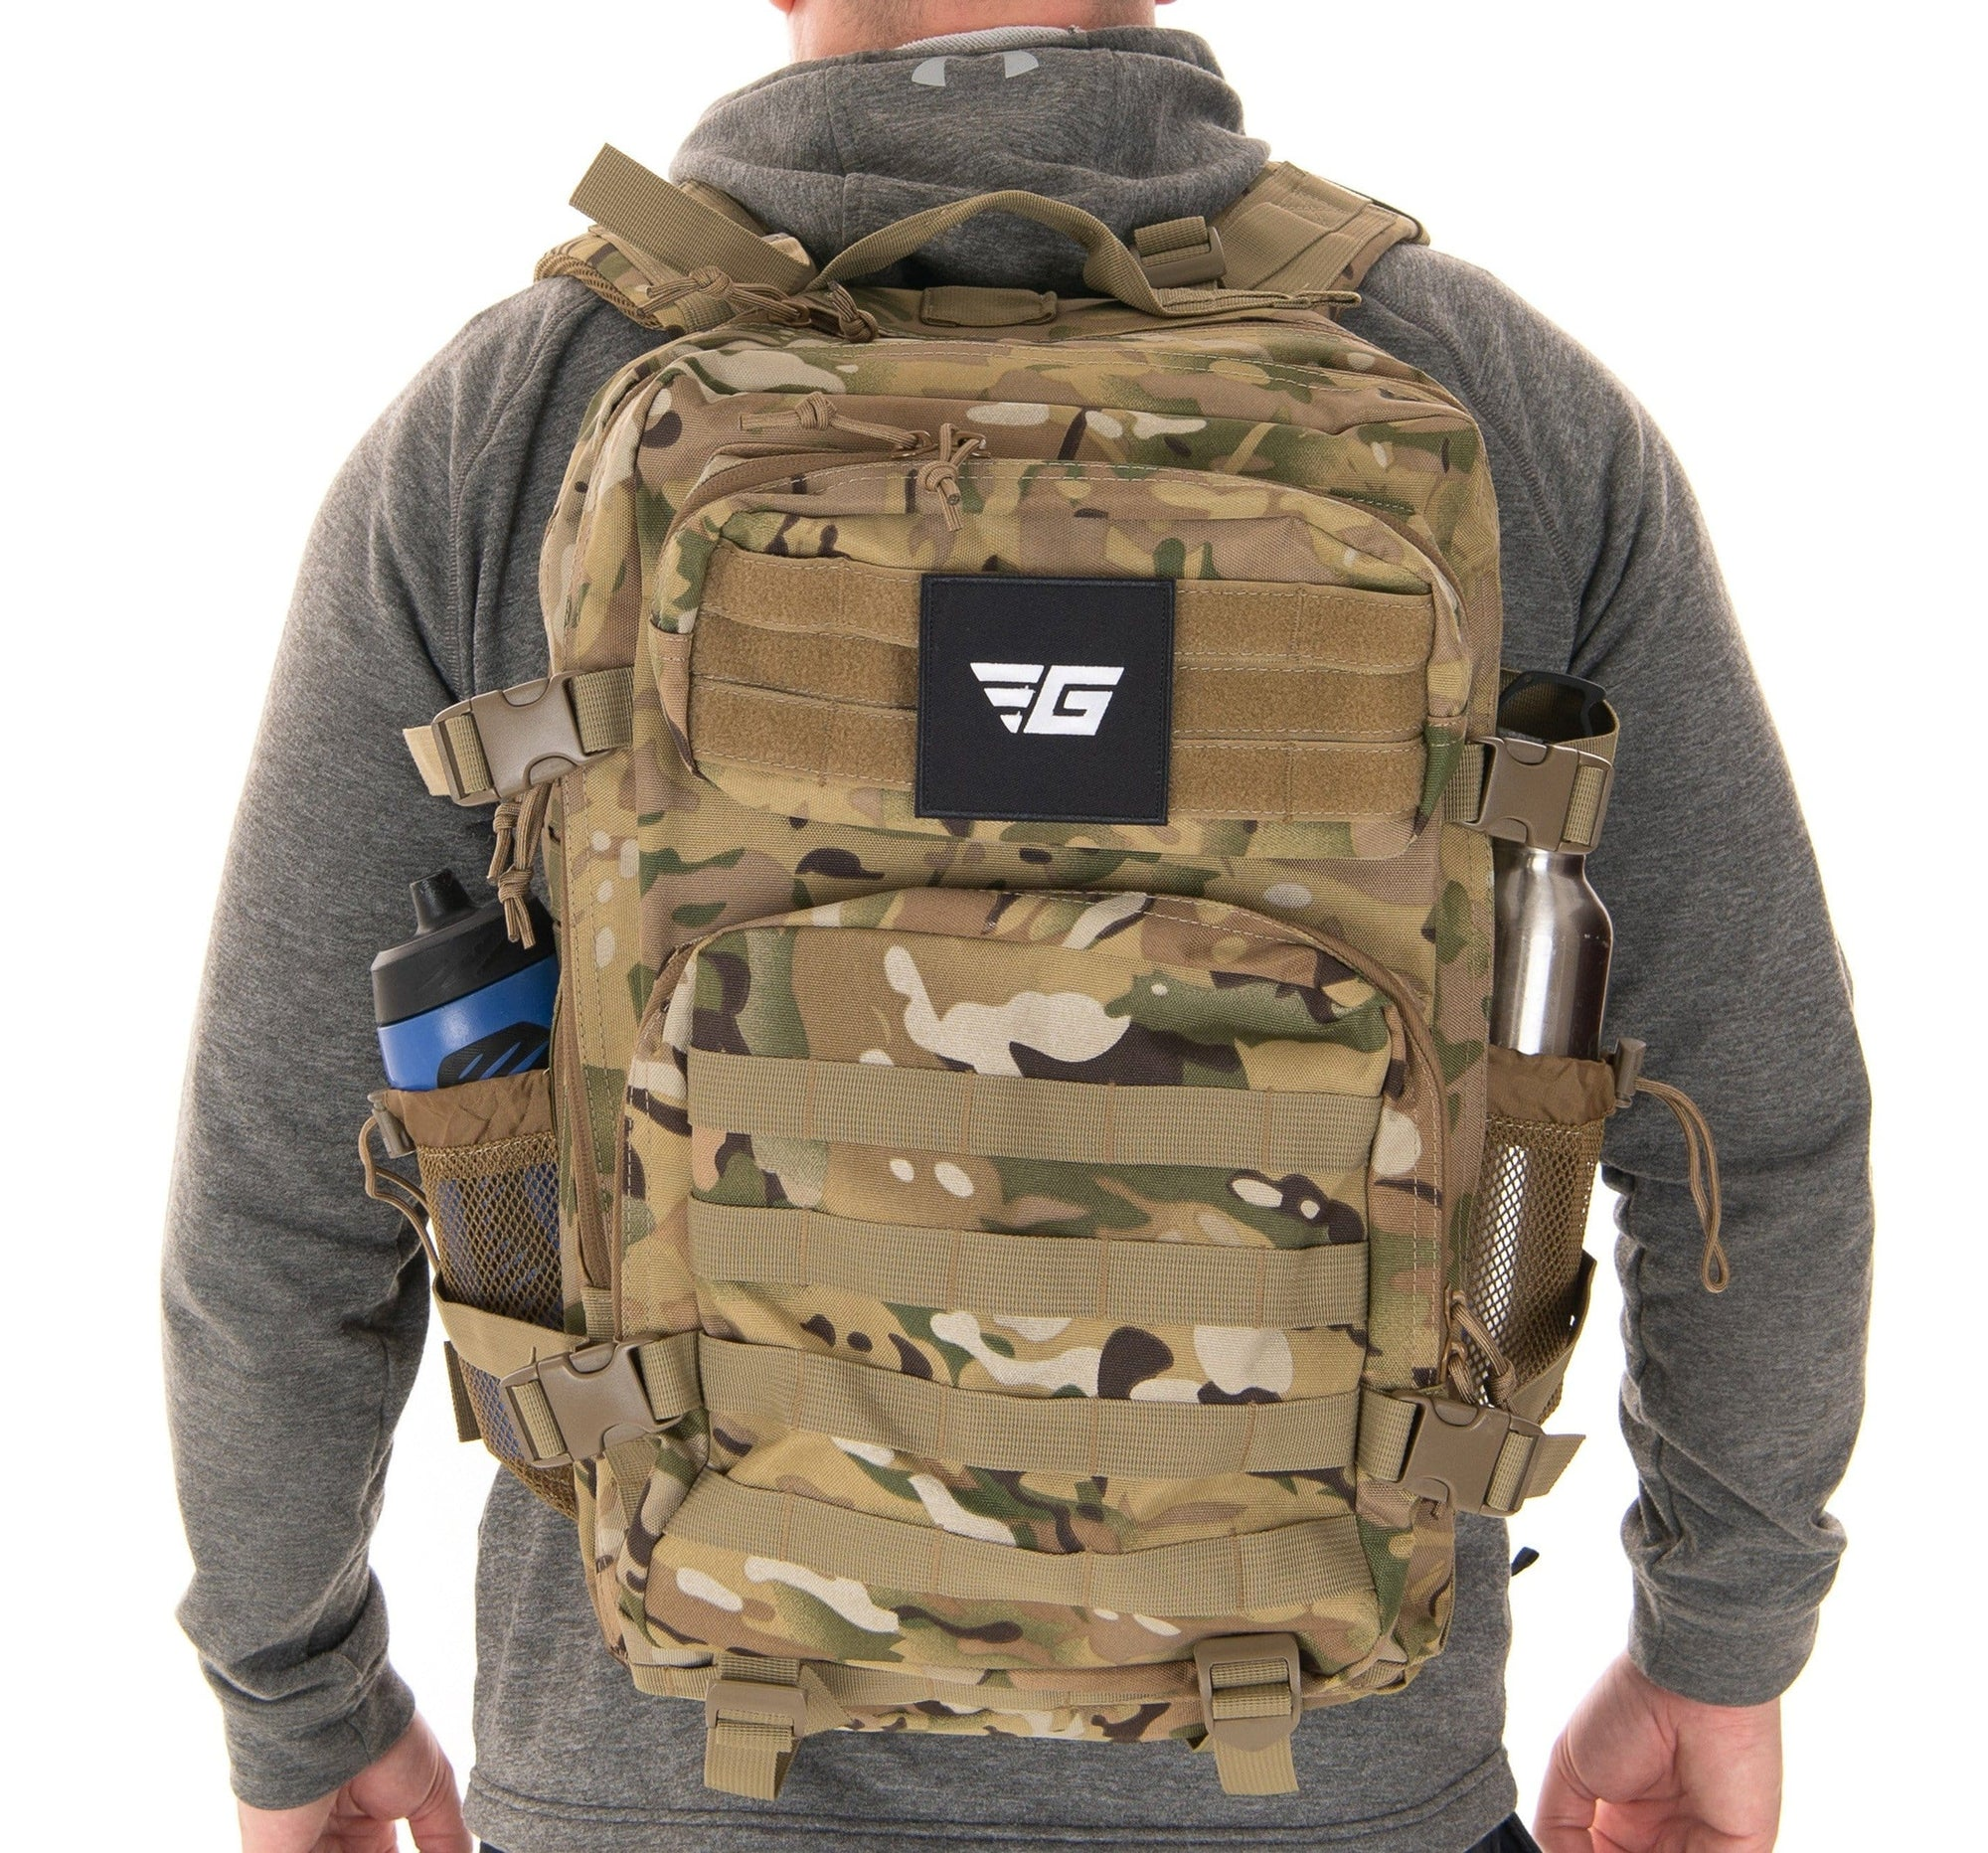 45L Escape Tactical Backpack